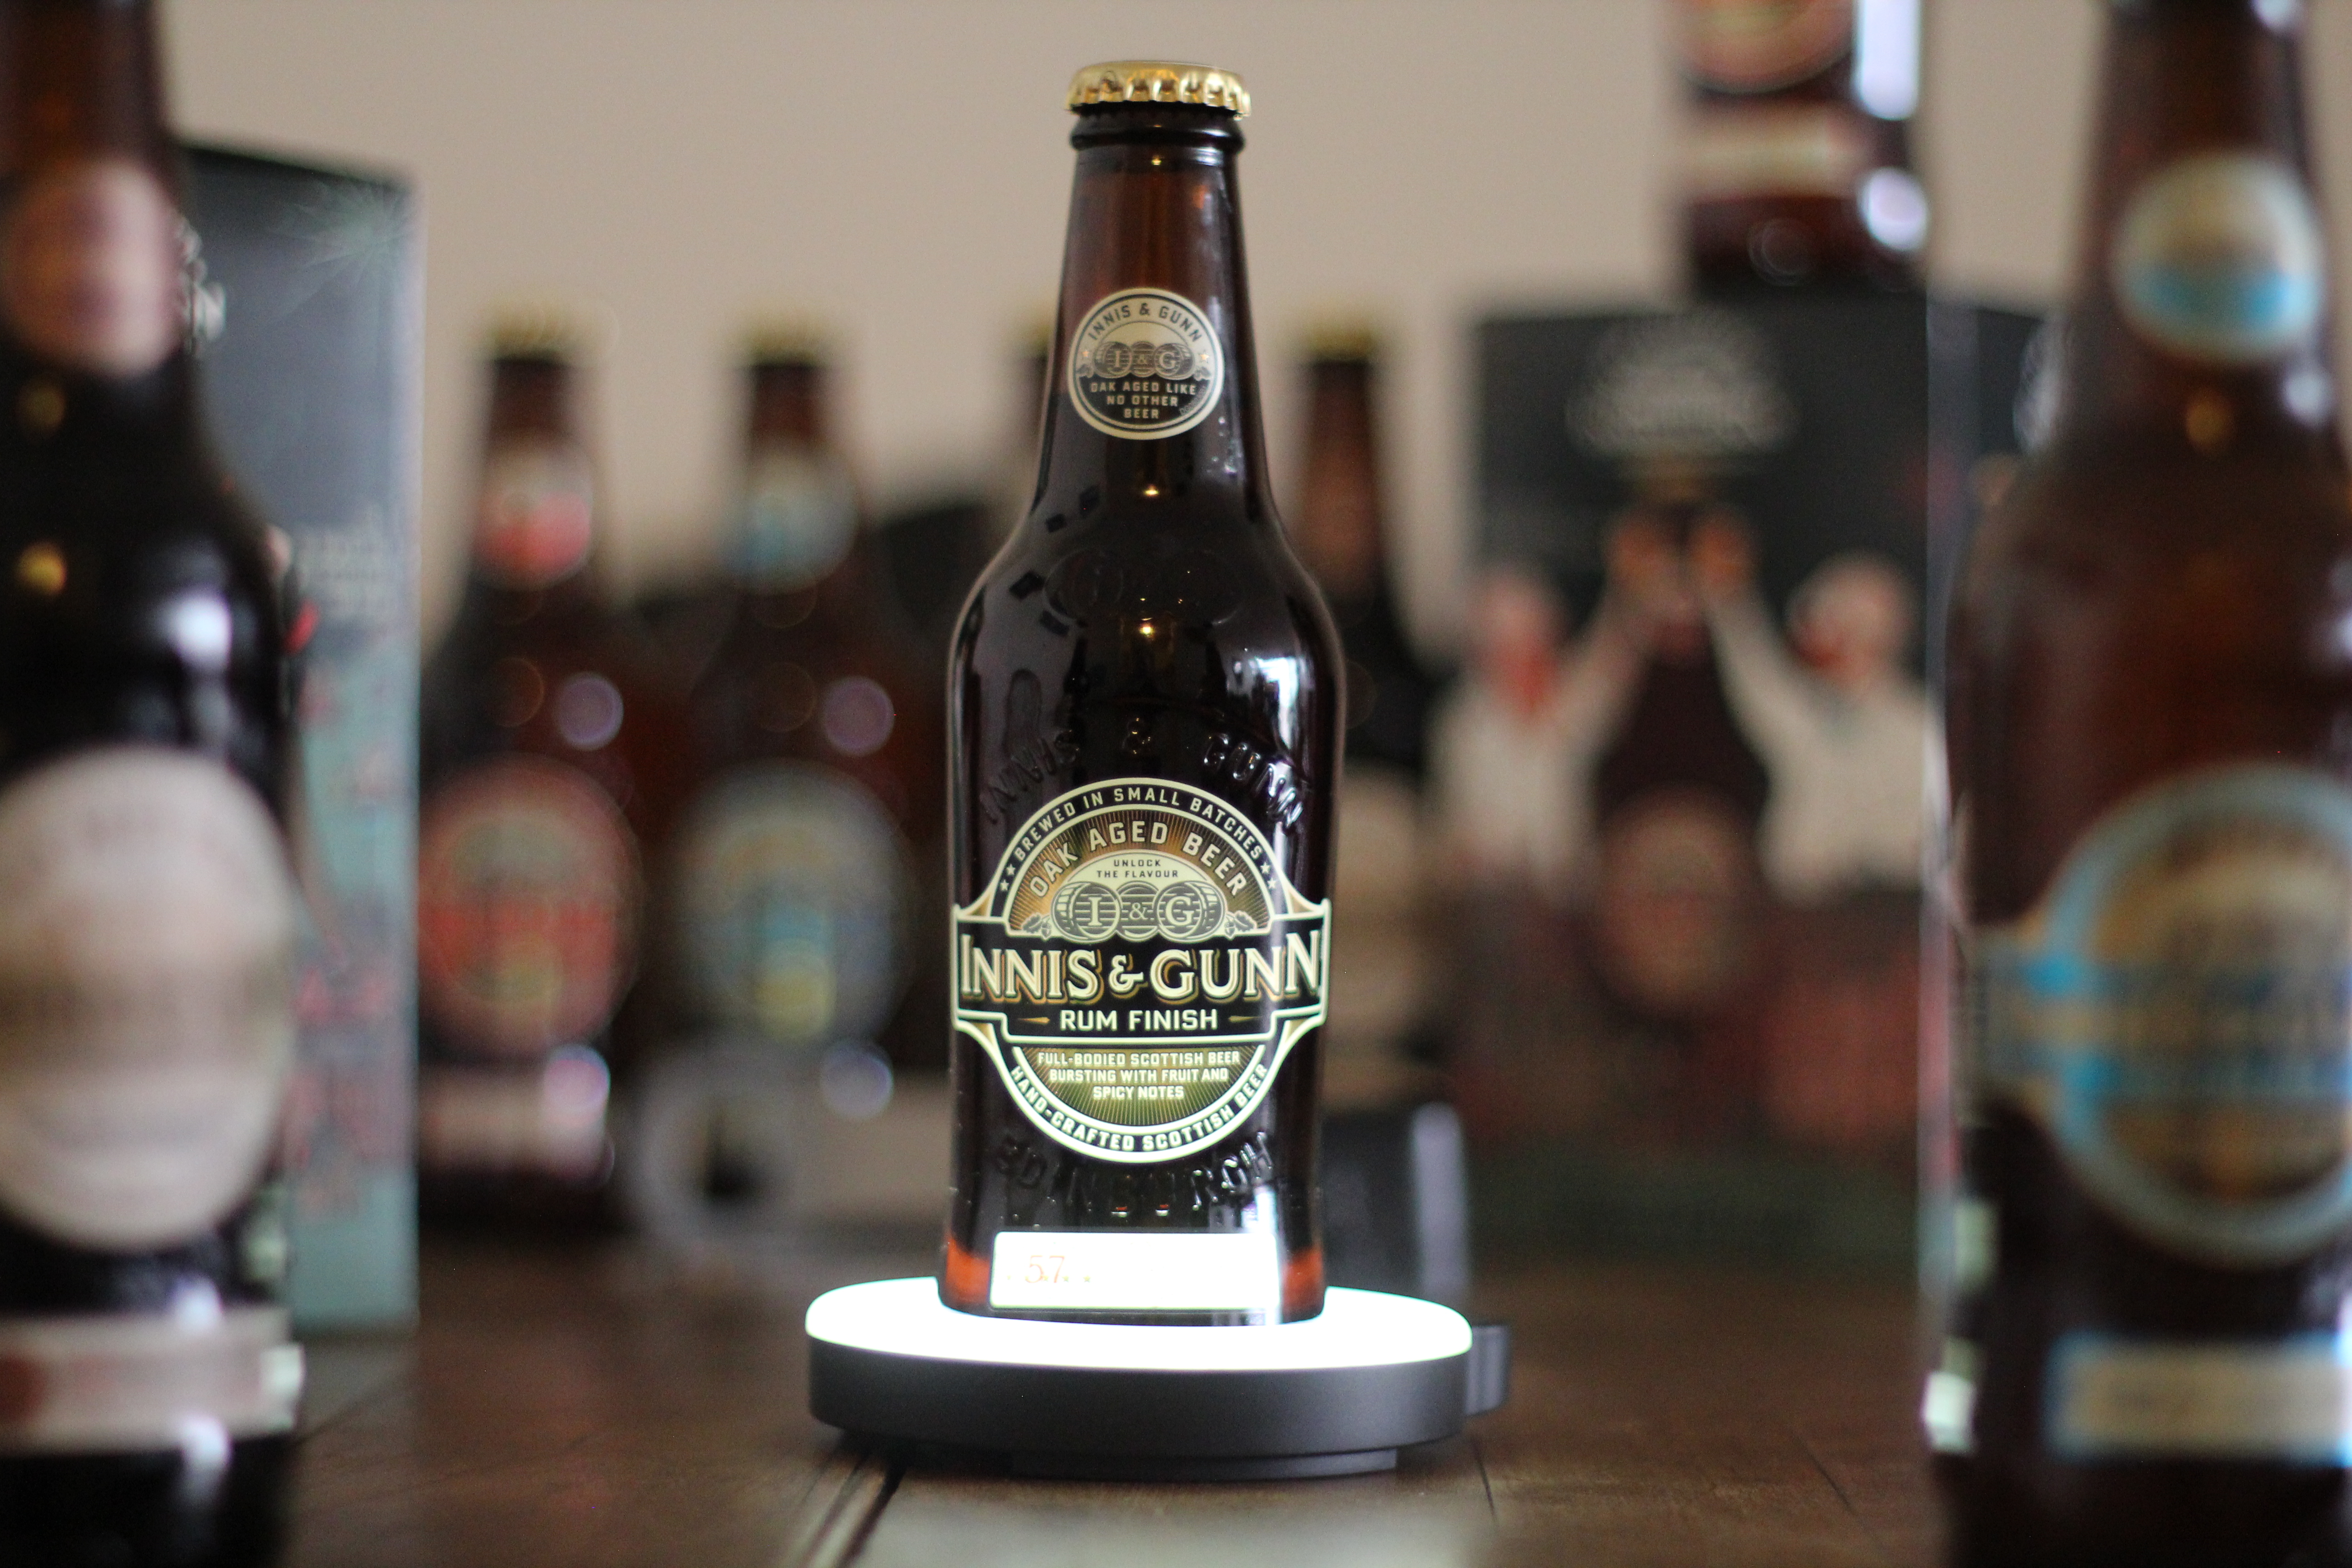 Innis & Gunn Rum Finish with Dan